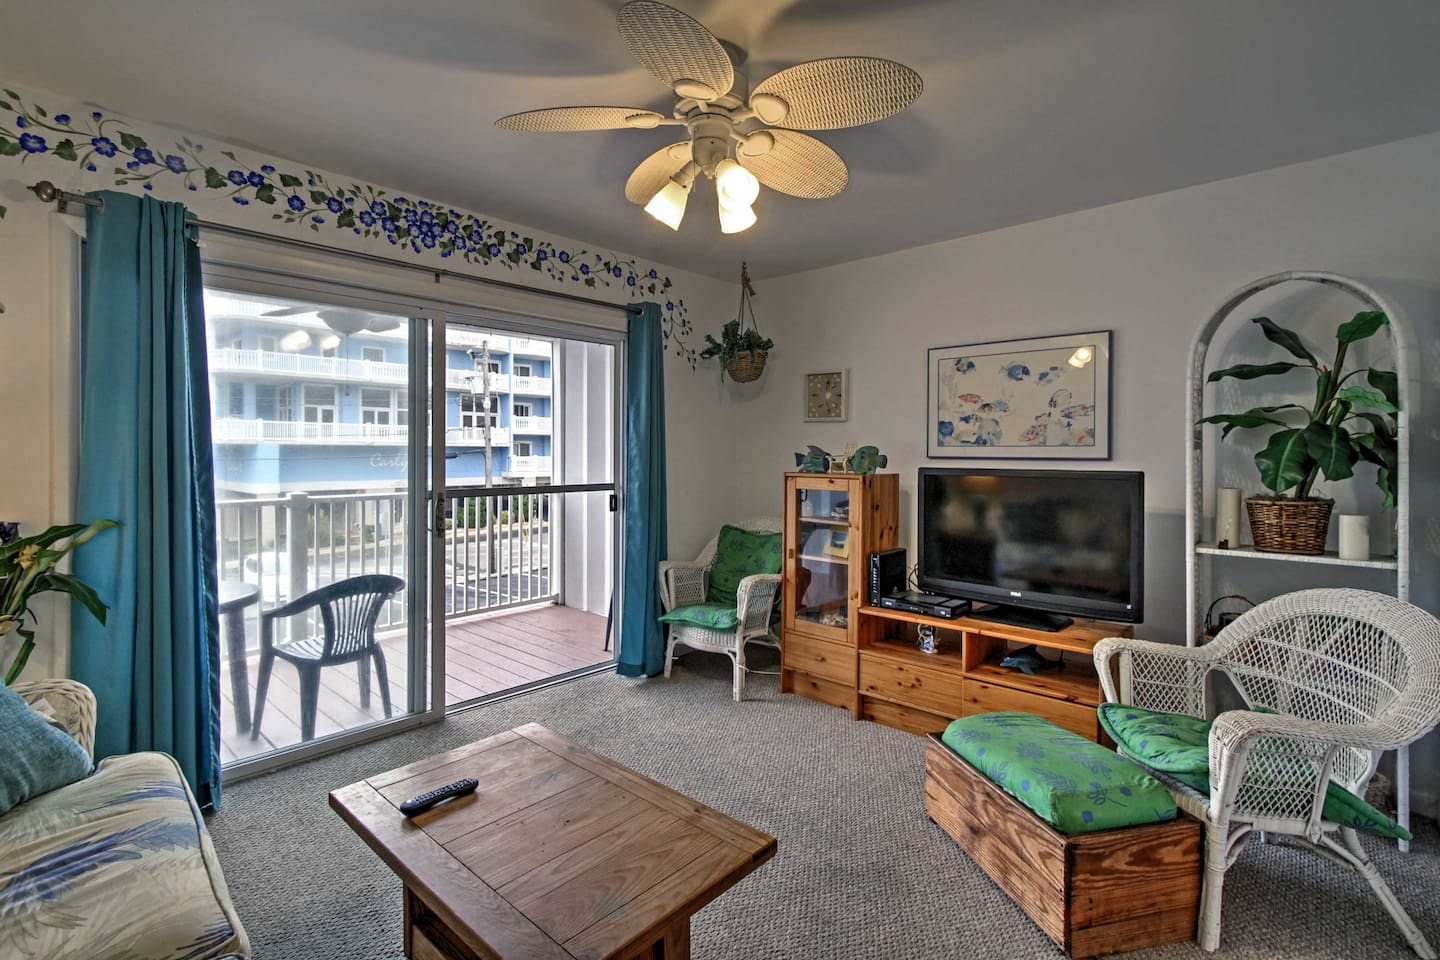 Experience Maryland's famous resort town with ease when you stay at this vacation rental condo in the heart of Ocean City!